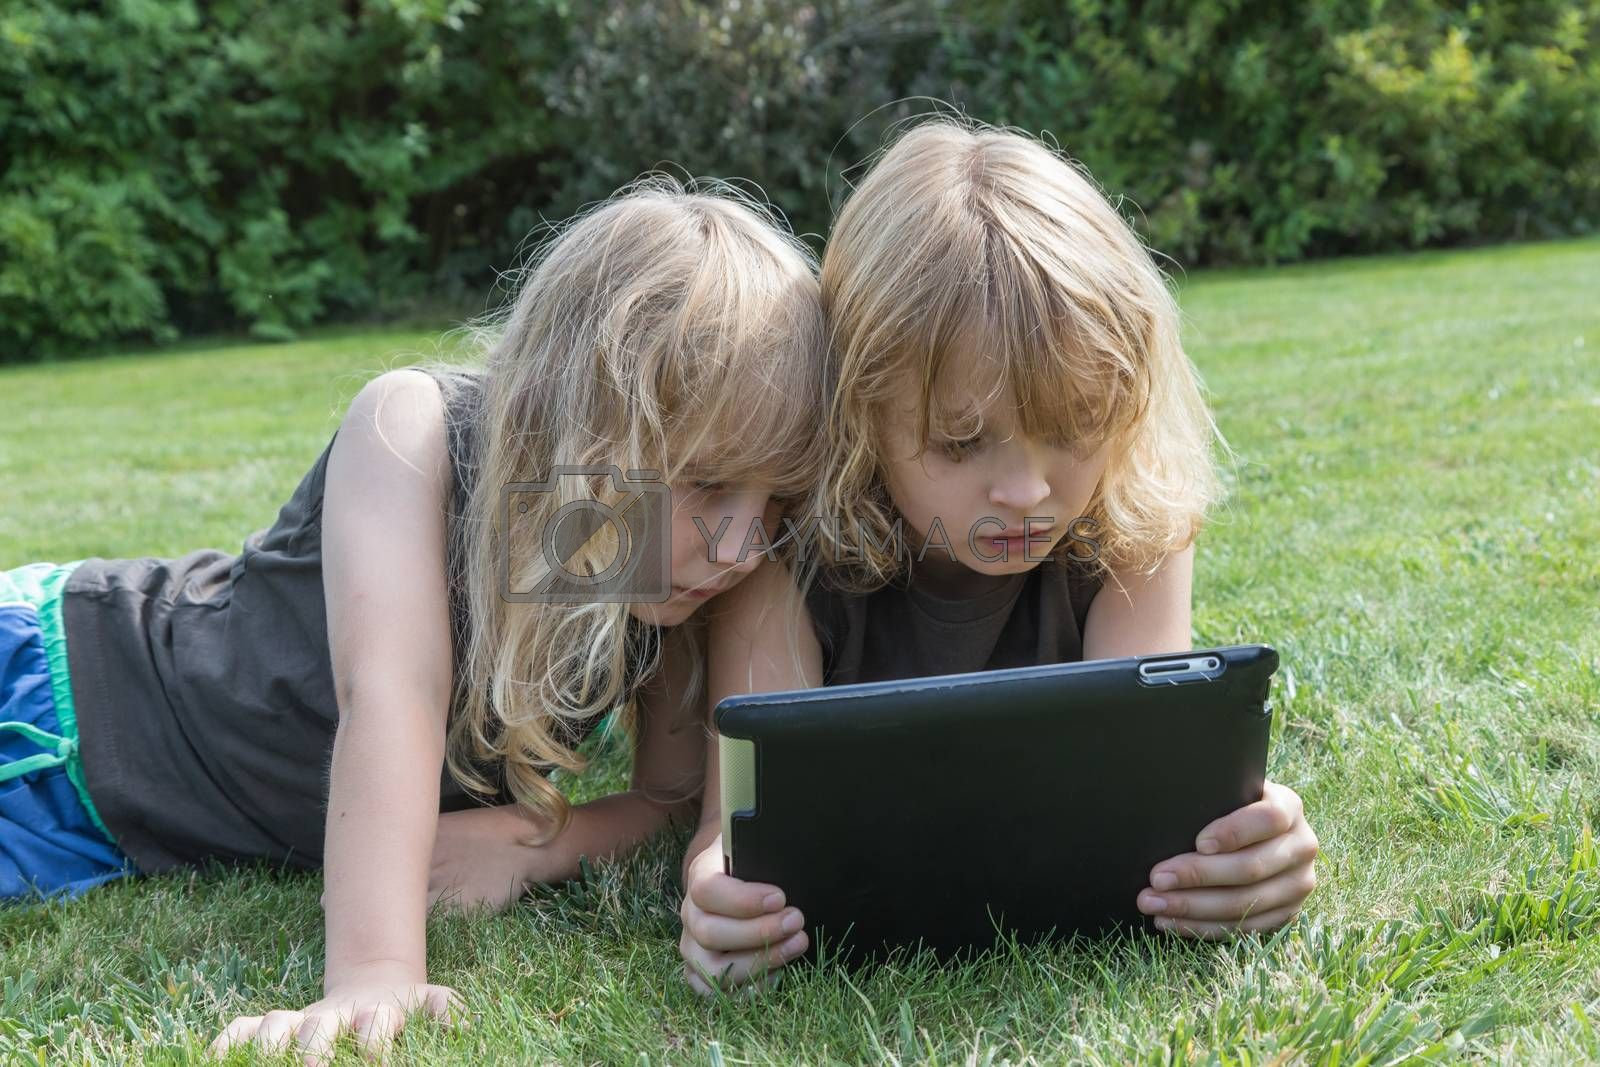 Two long haired blond boys are lying on the lawn and looking to the tablet.